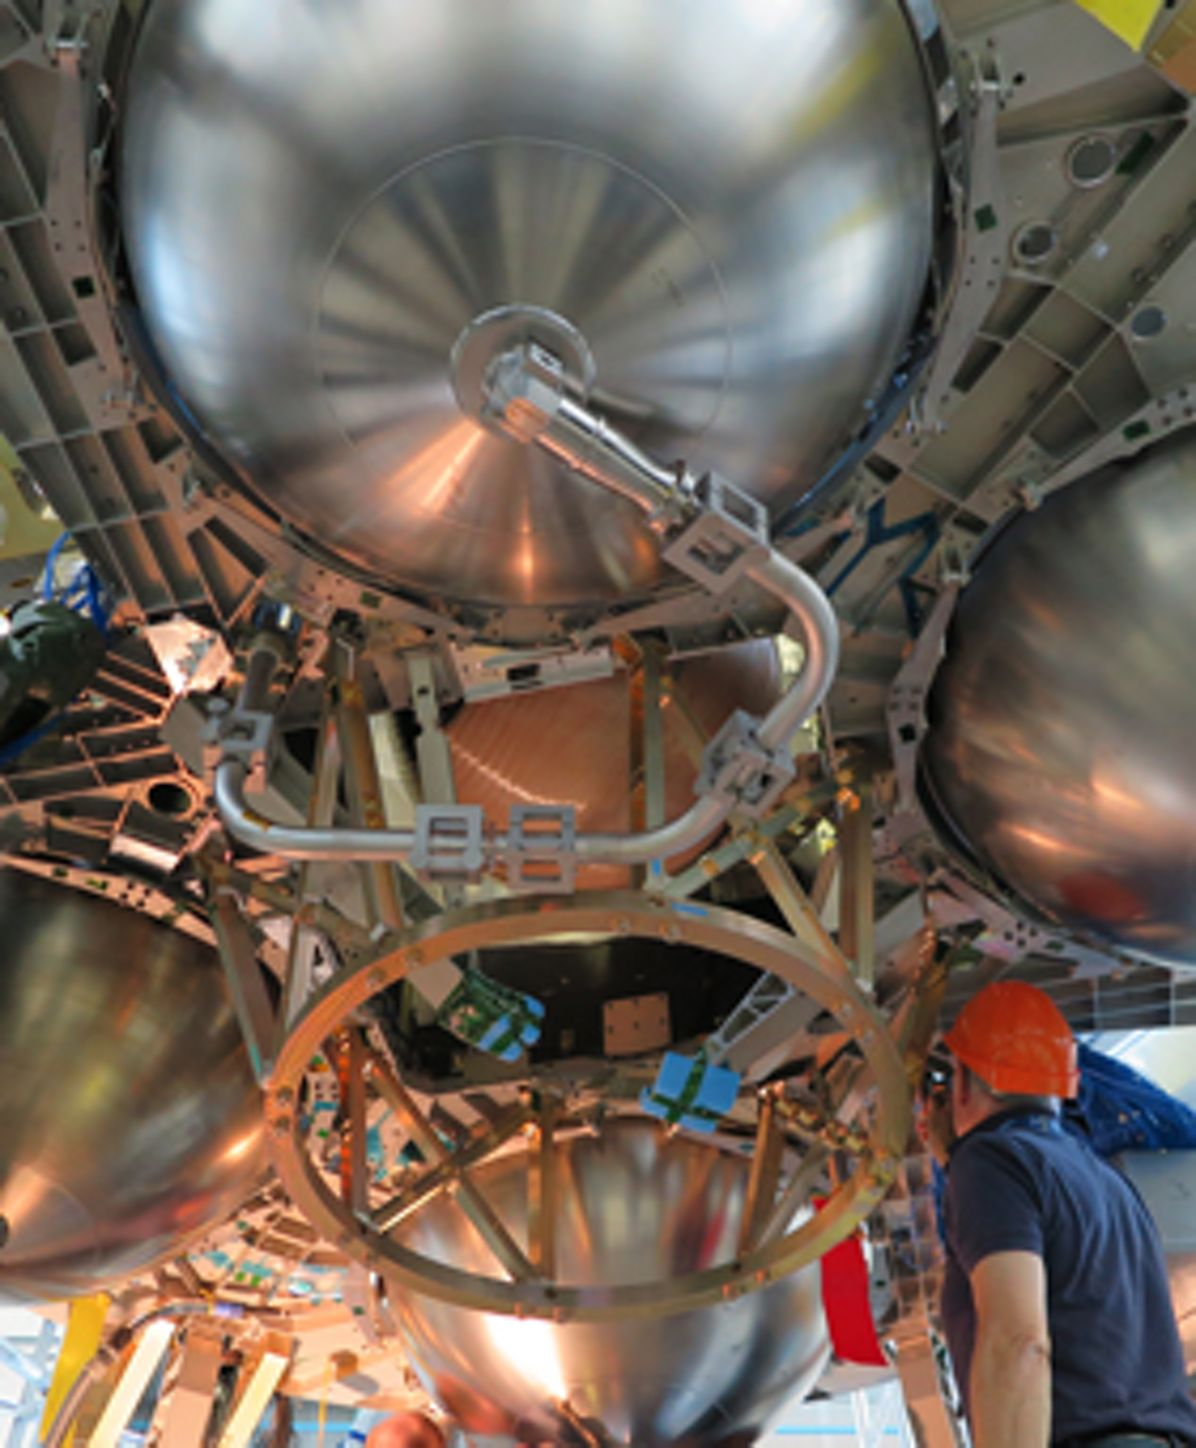 Orion ESM – structural test model ready for shipment